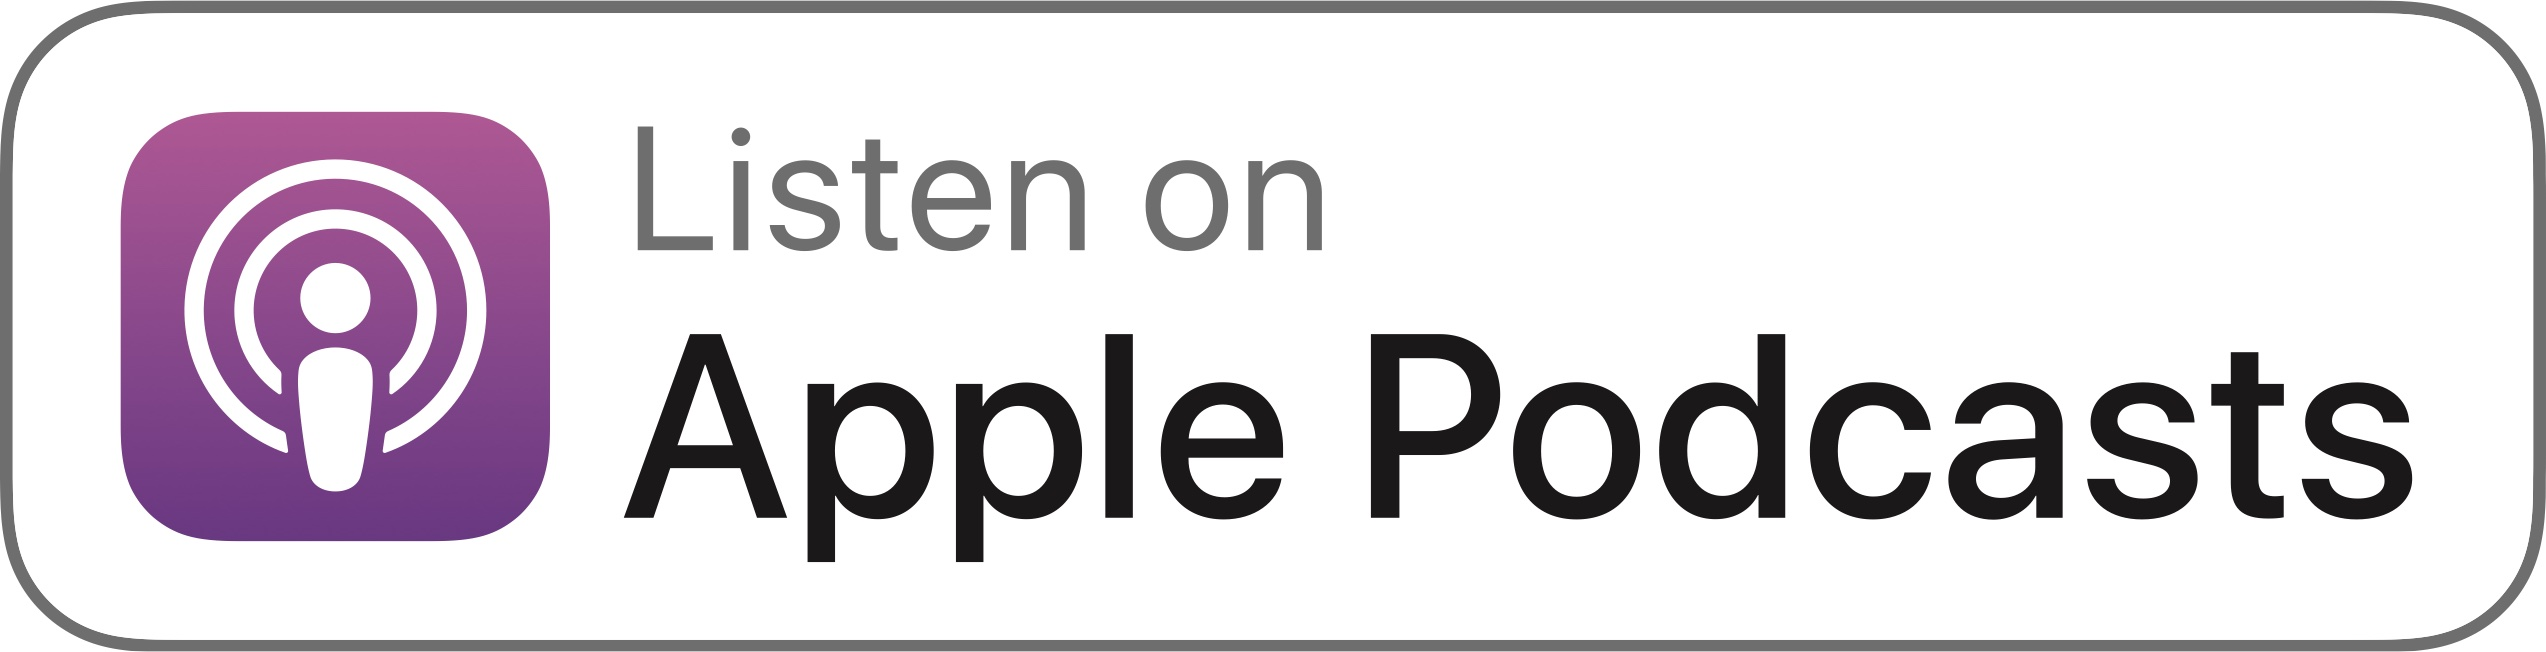 Listen on ApplePodcast